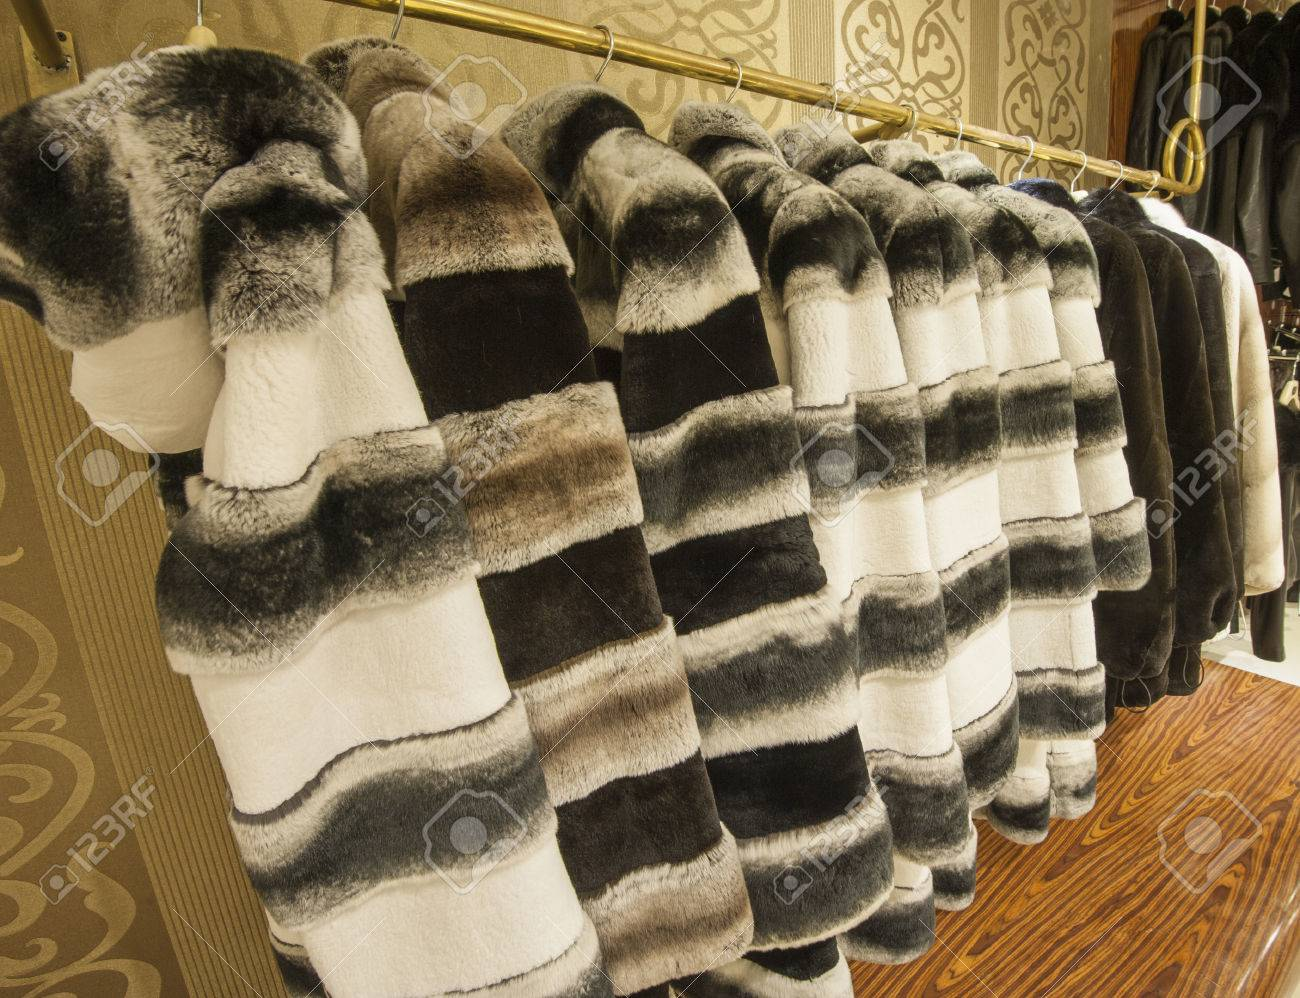 Expensive Genuine Fur Coats Hanging On A Rail In Shop Stock Photo